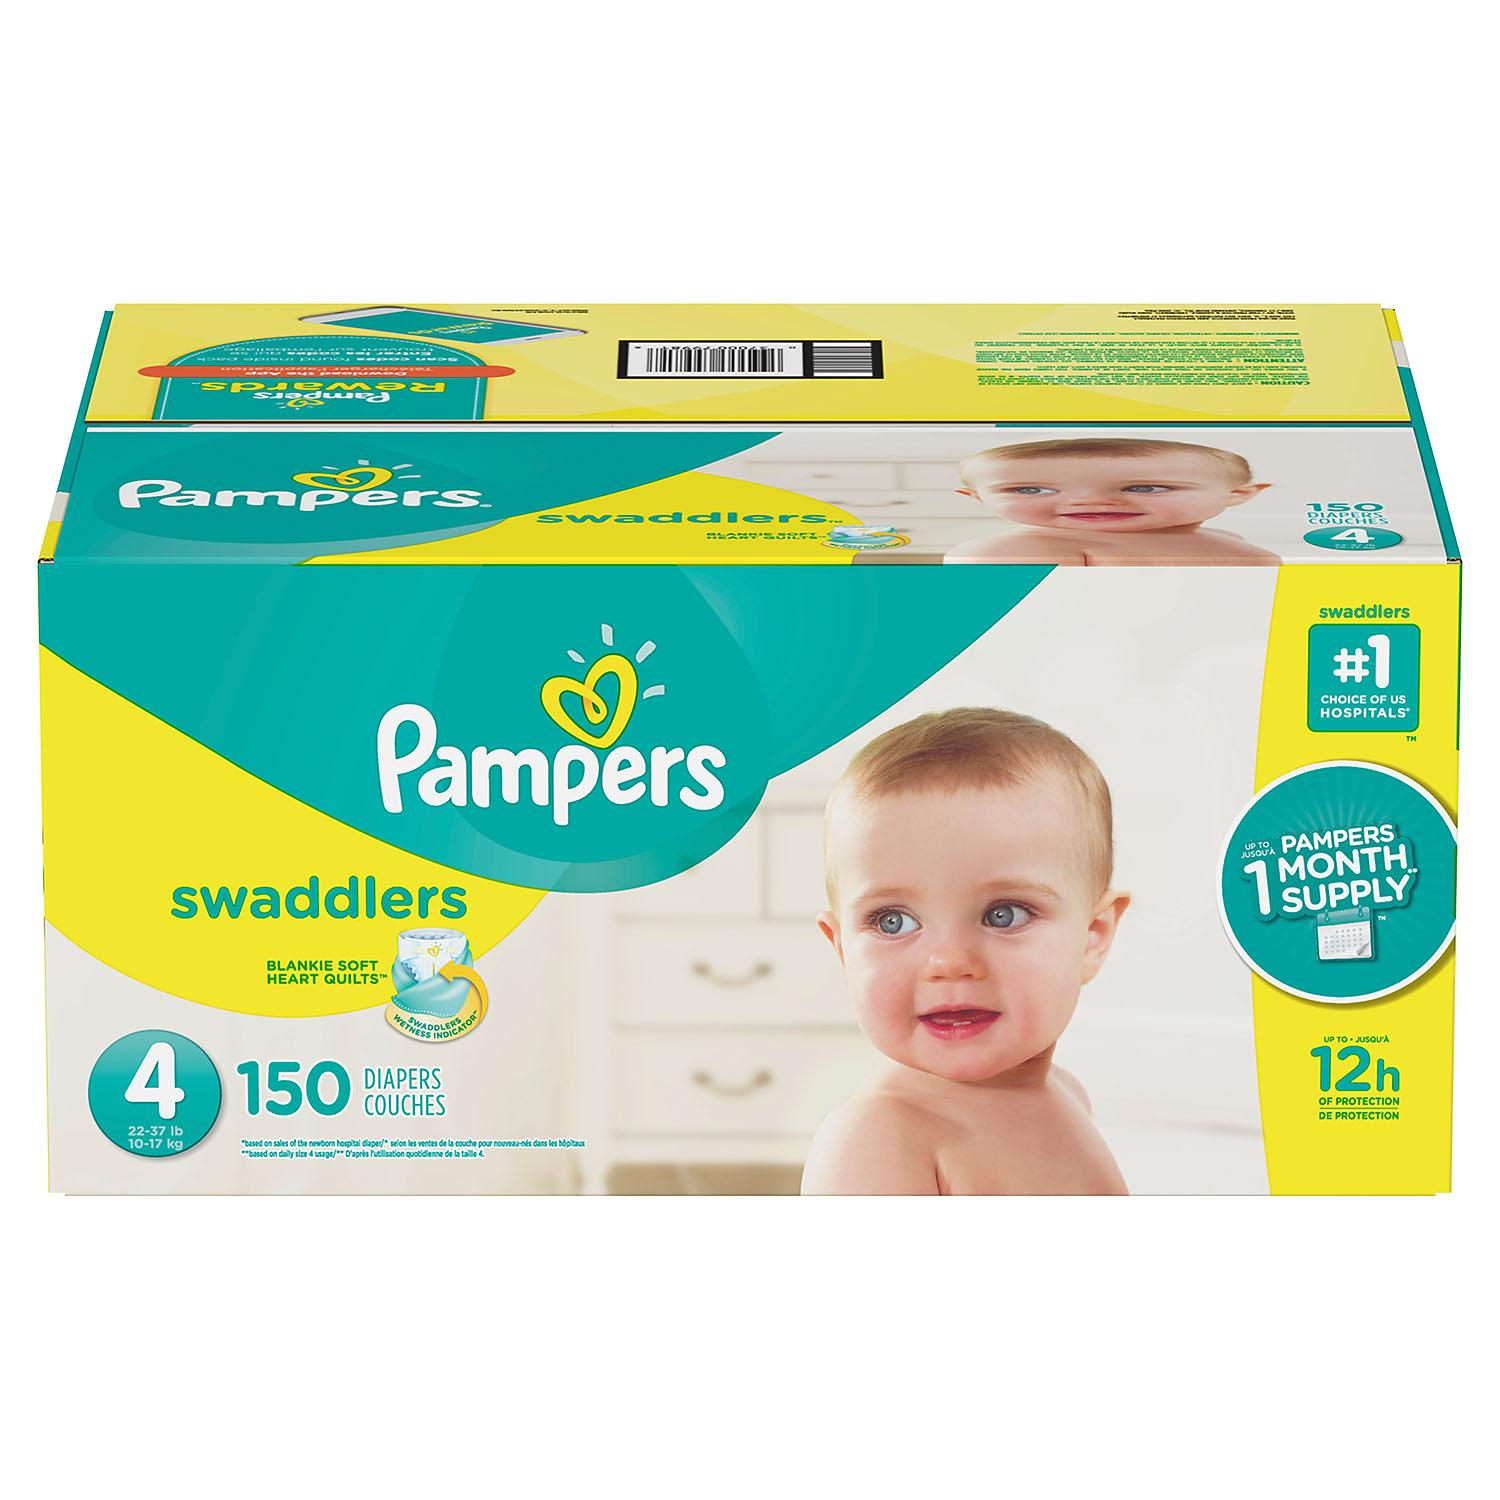 Item By Pampers Swaddlers Diapers #1 choice of hospitals, nurses and parents. size: 4 -150 ct. (22-37 lb.) by Brand By Diapers